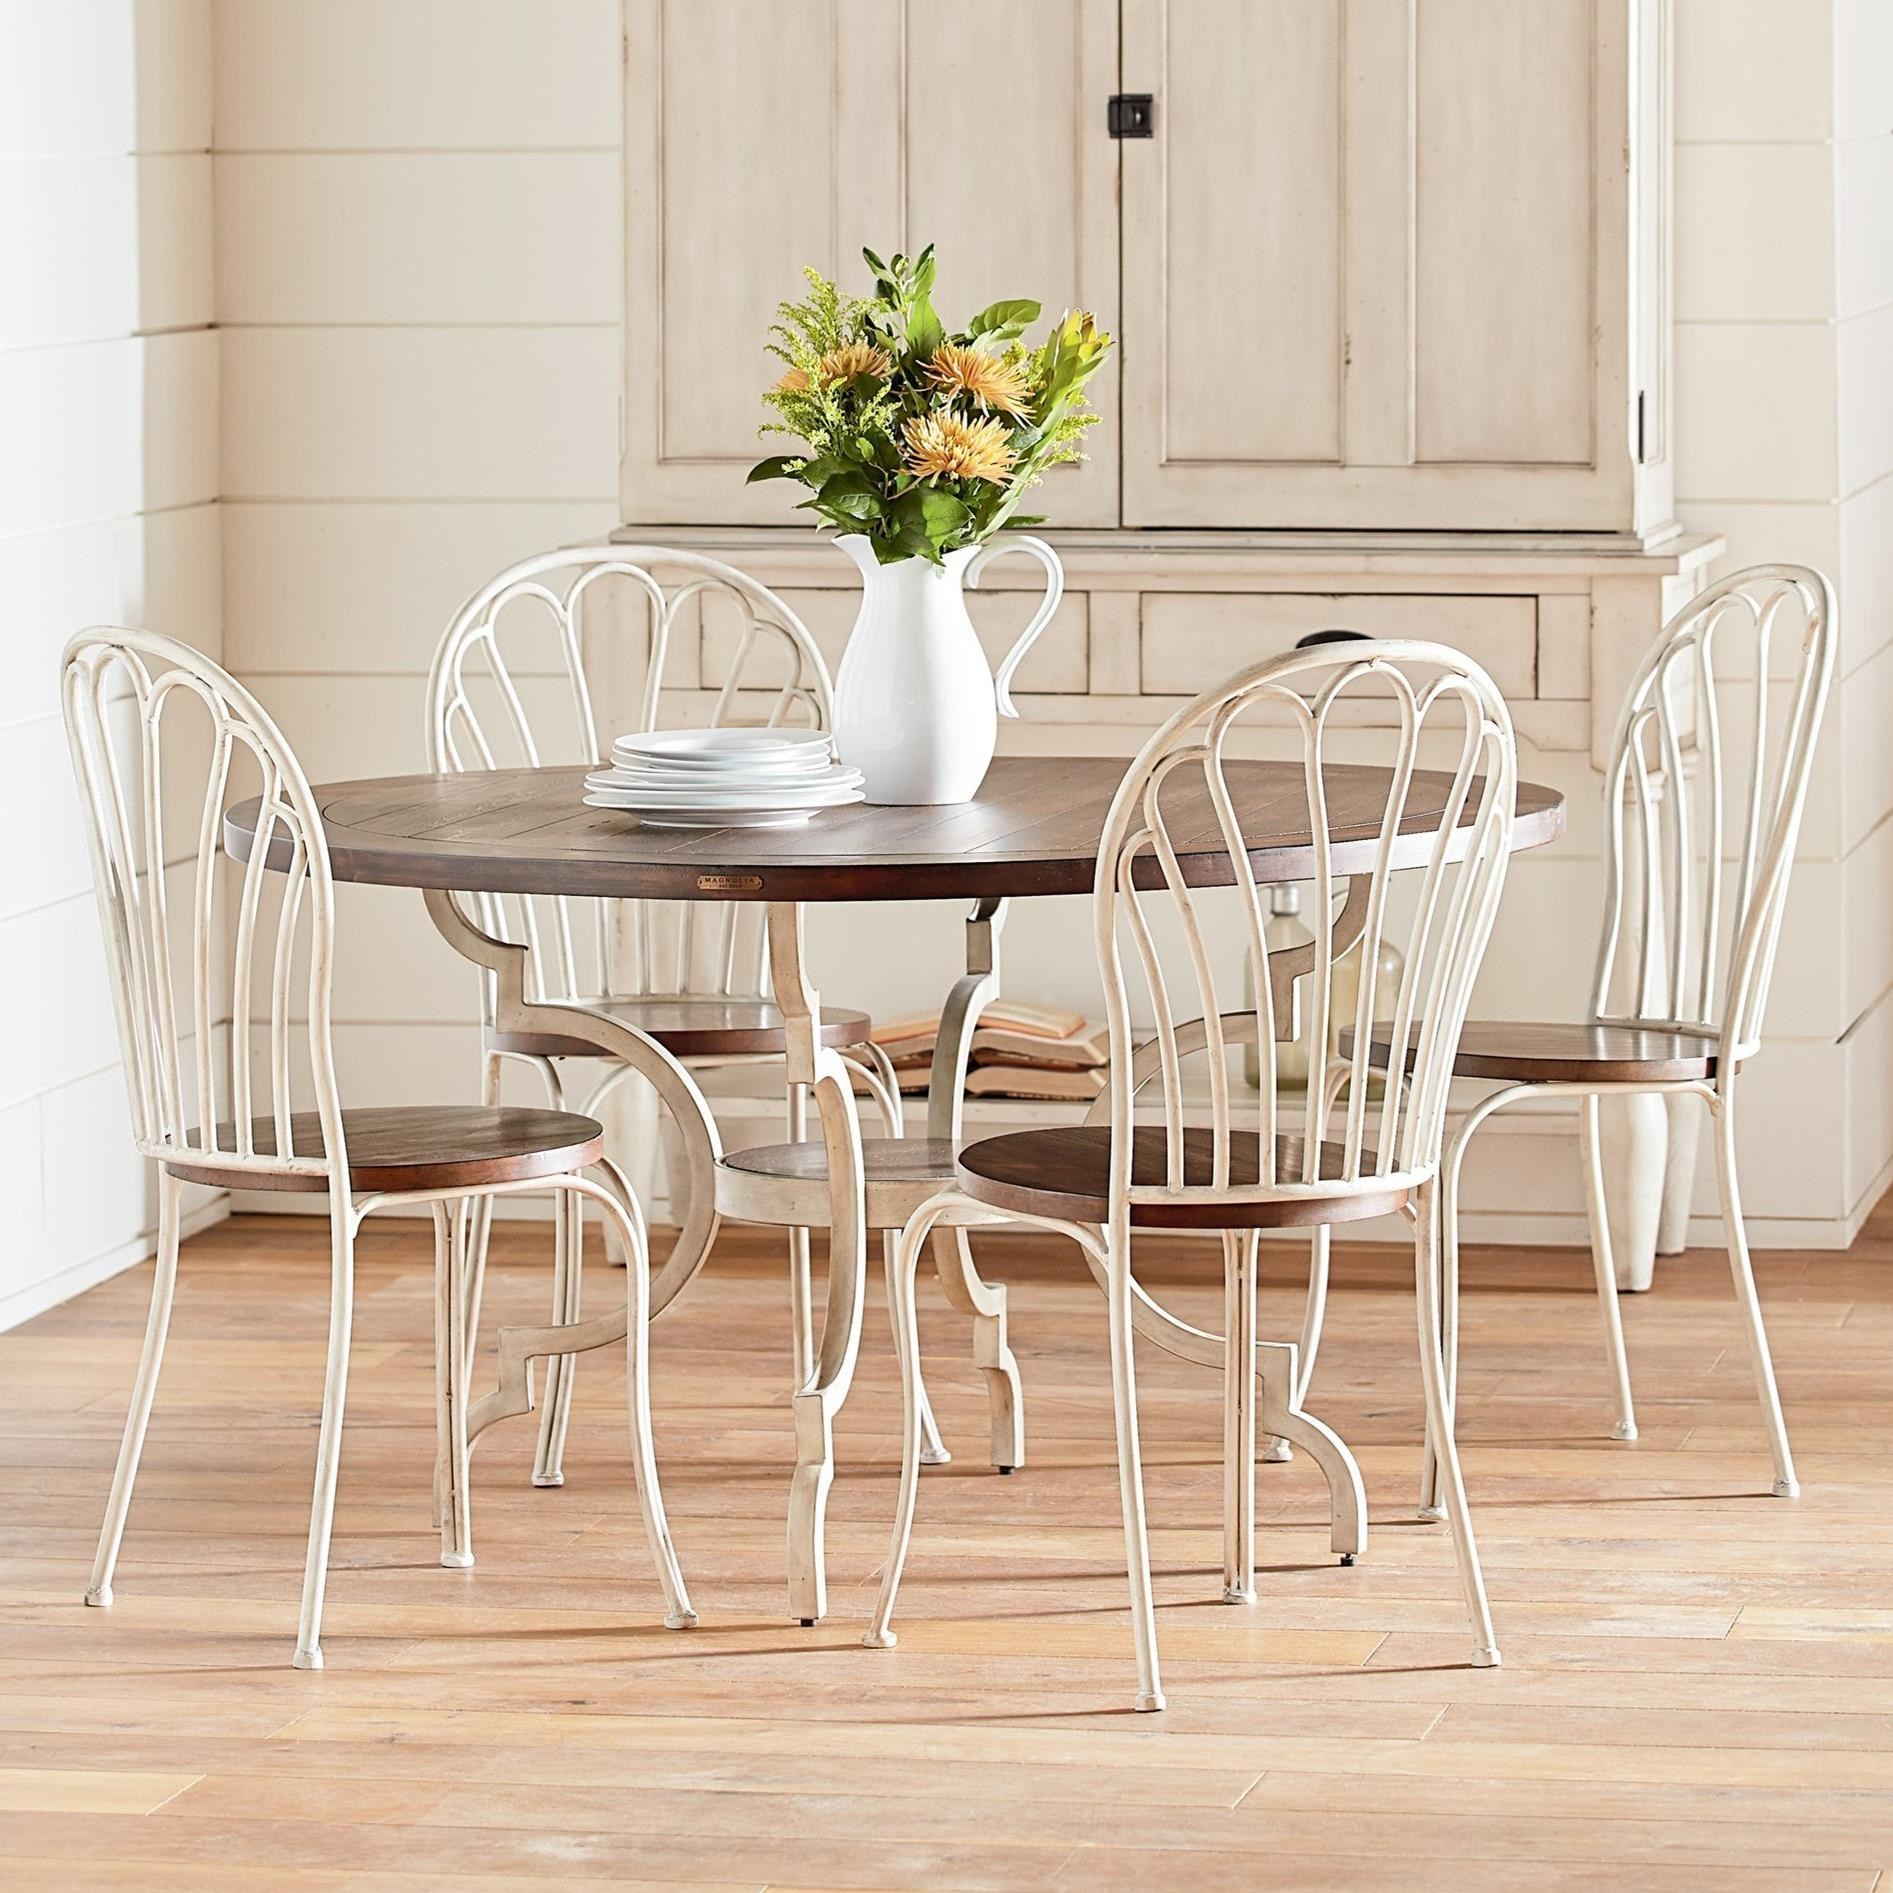 Magnolia Home By Joanna Gaines Primitive 5 Piece Round Table U0026 Chair Set    Olindeu0027s Furniture   Dining 5 Piece Sets